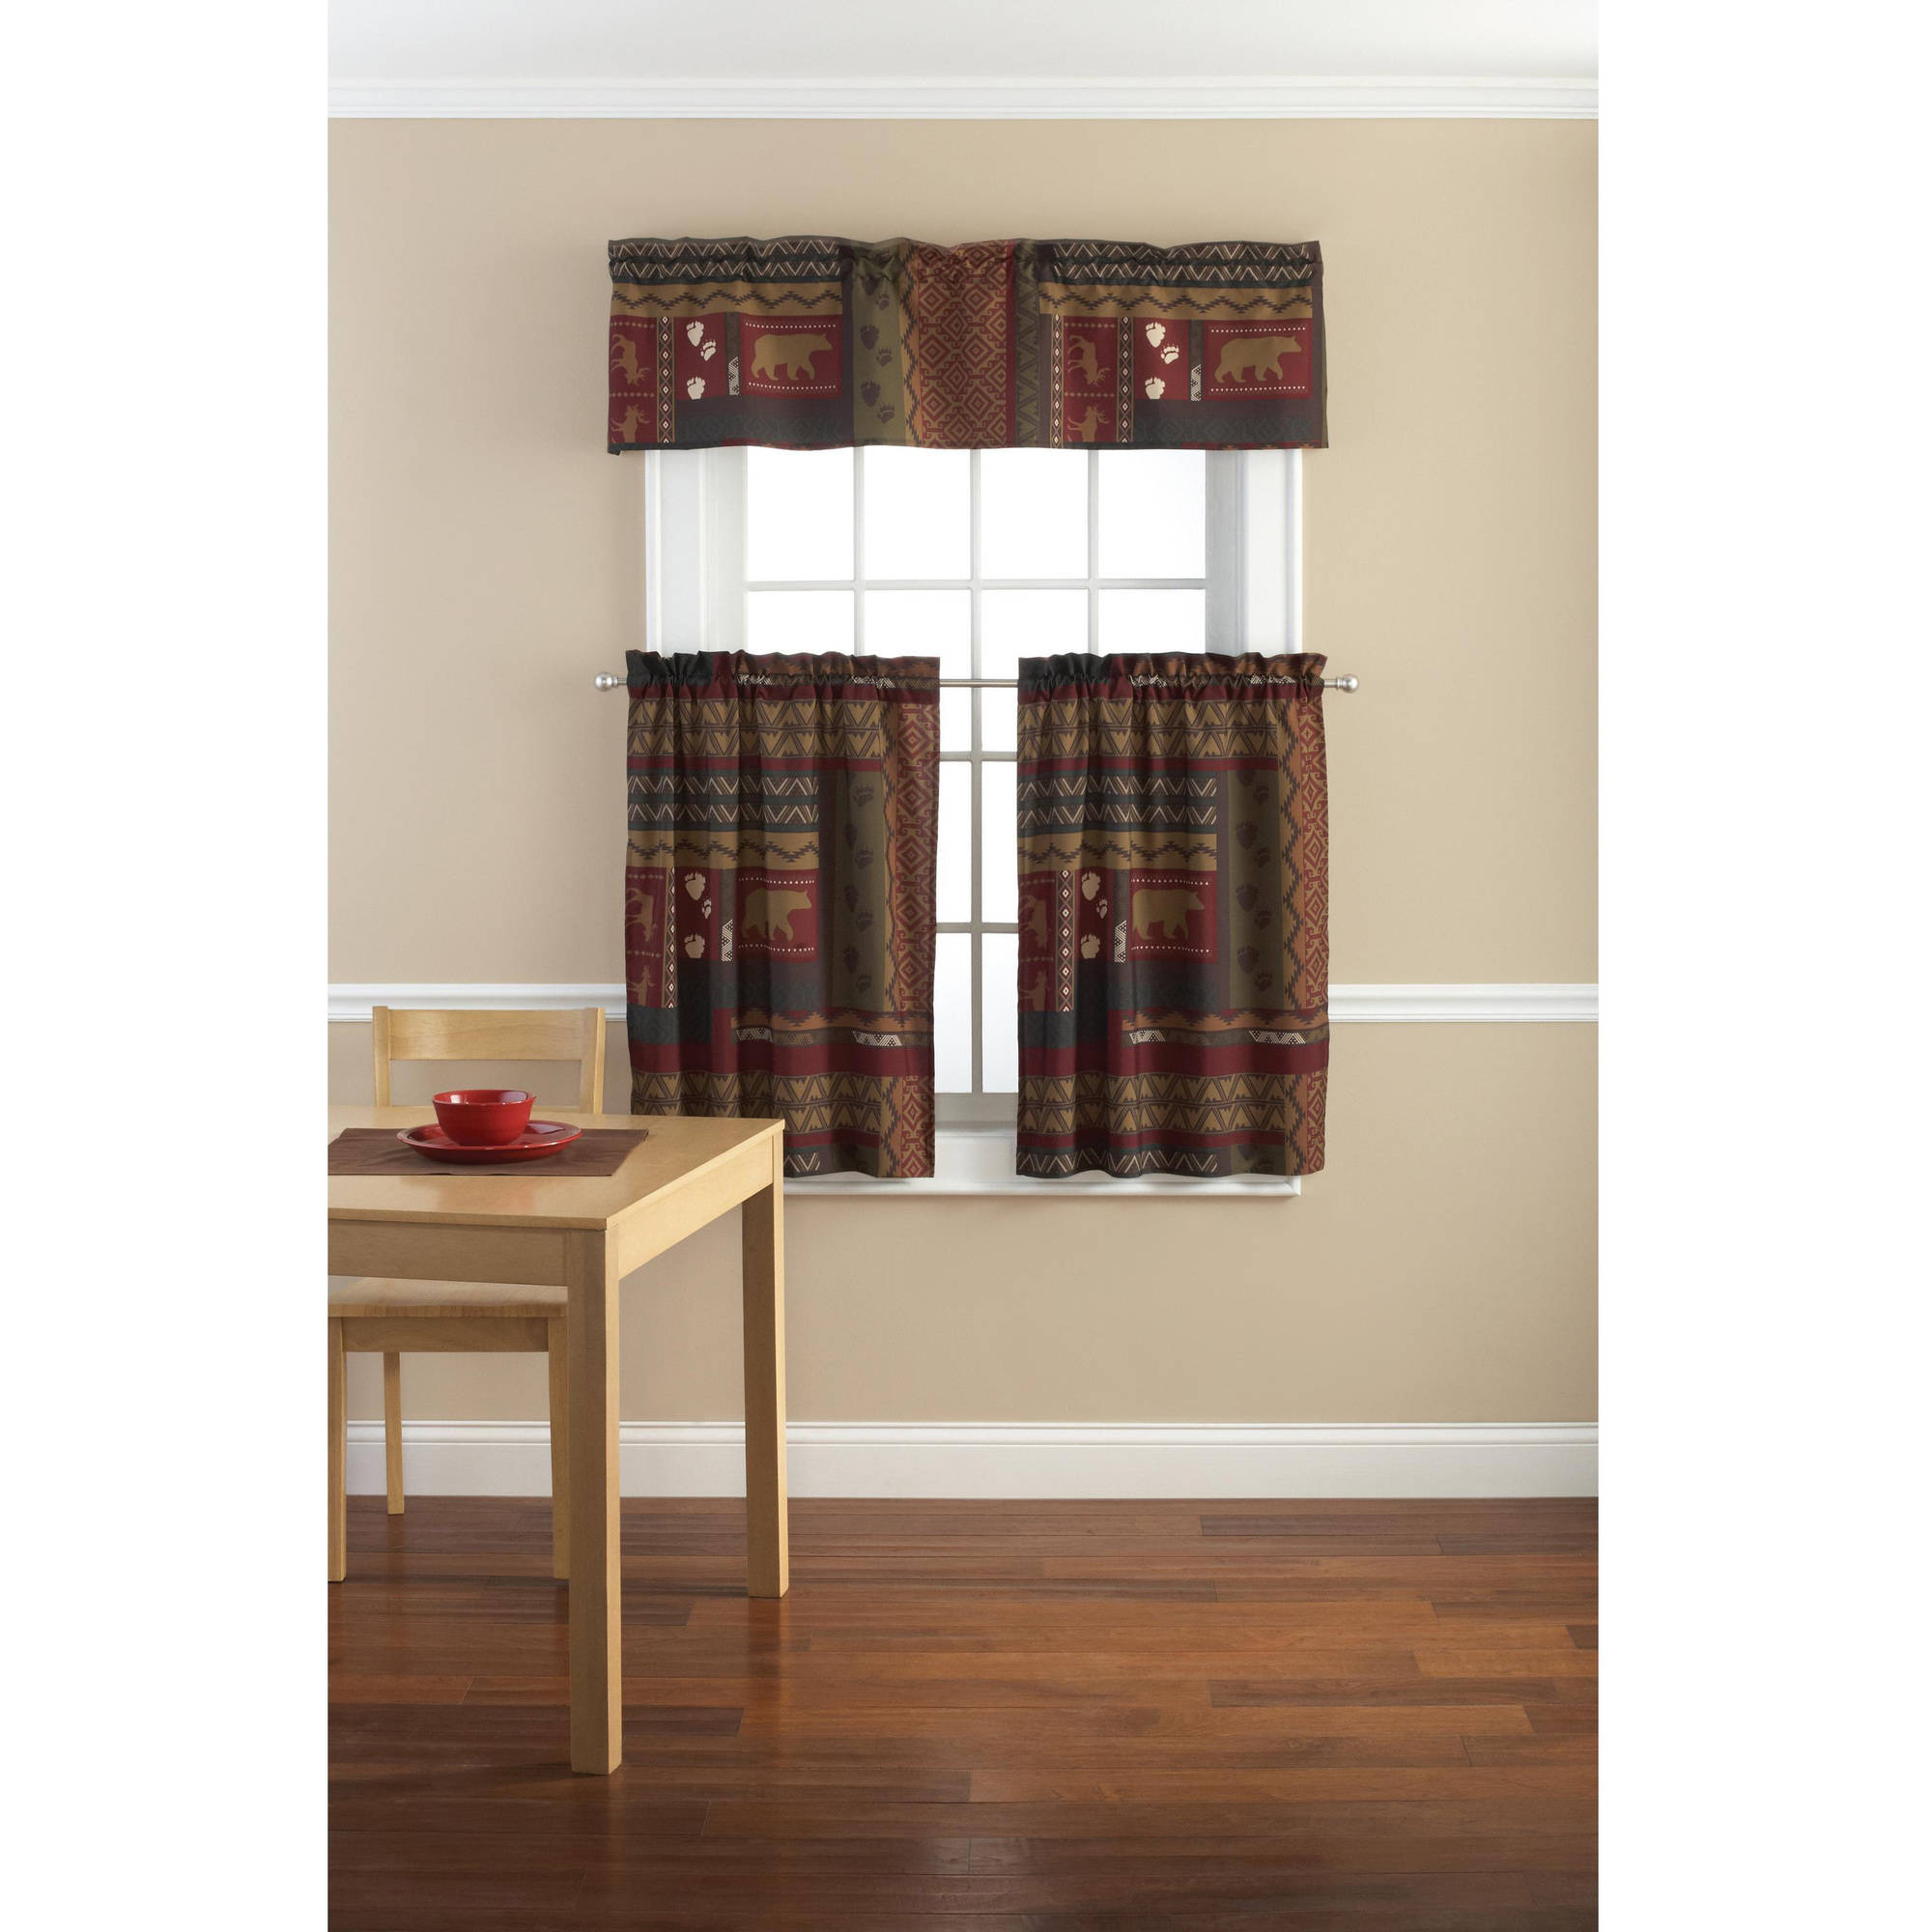 mainstays tahoe cabin printed valance and kitchen curtains, set of